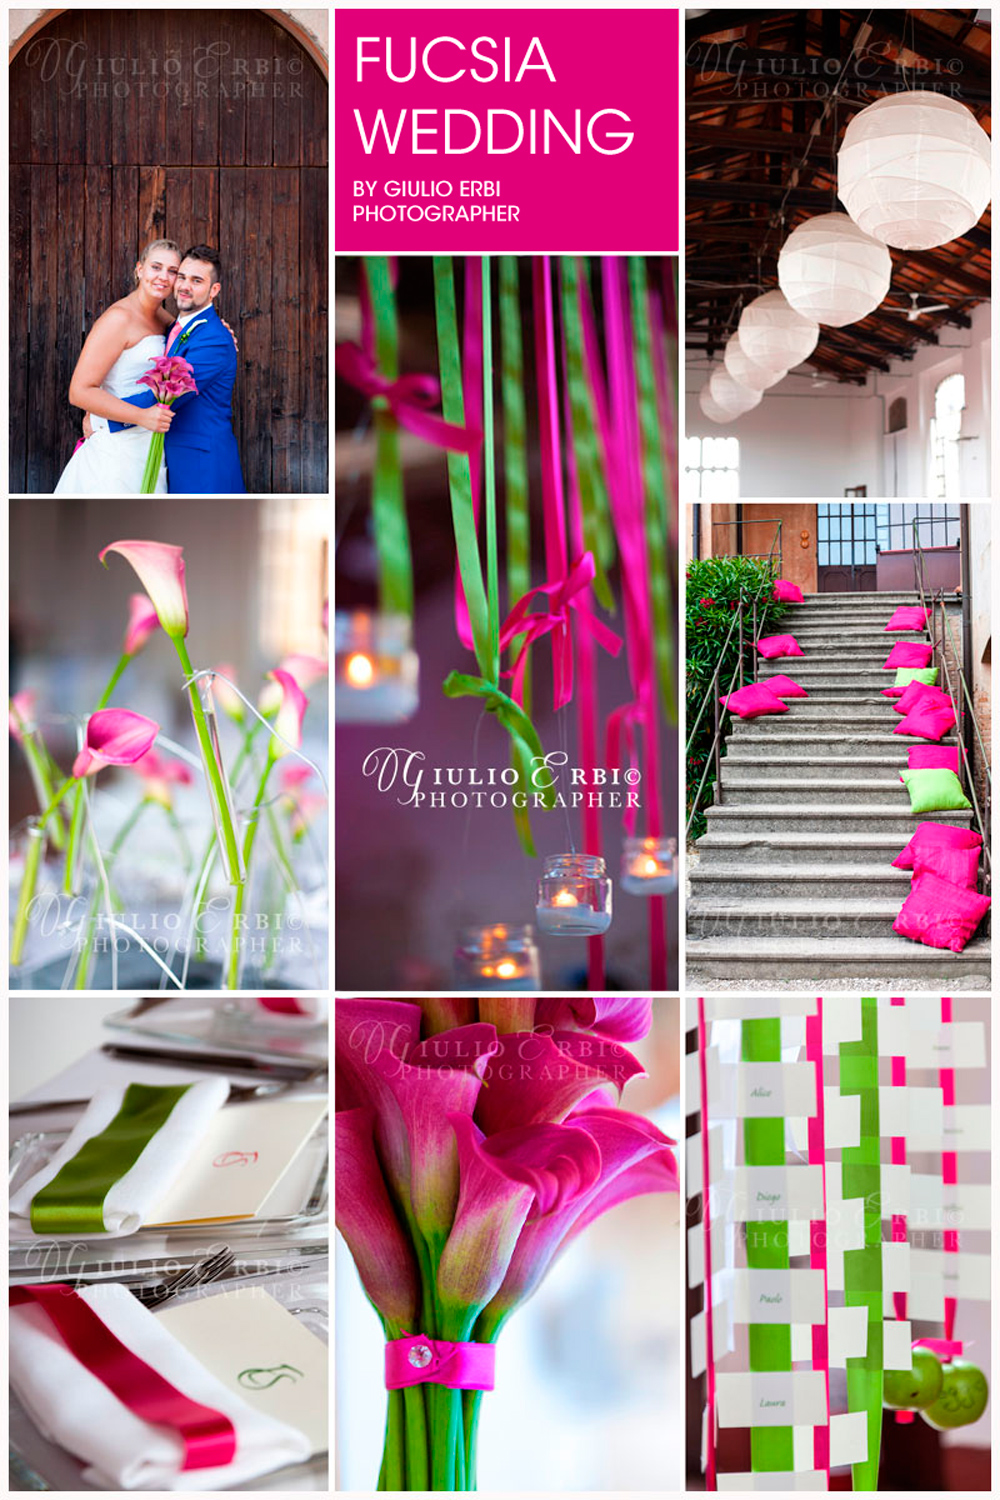 Fuchsia Wedding in Italy